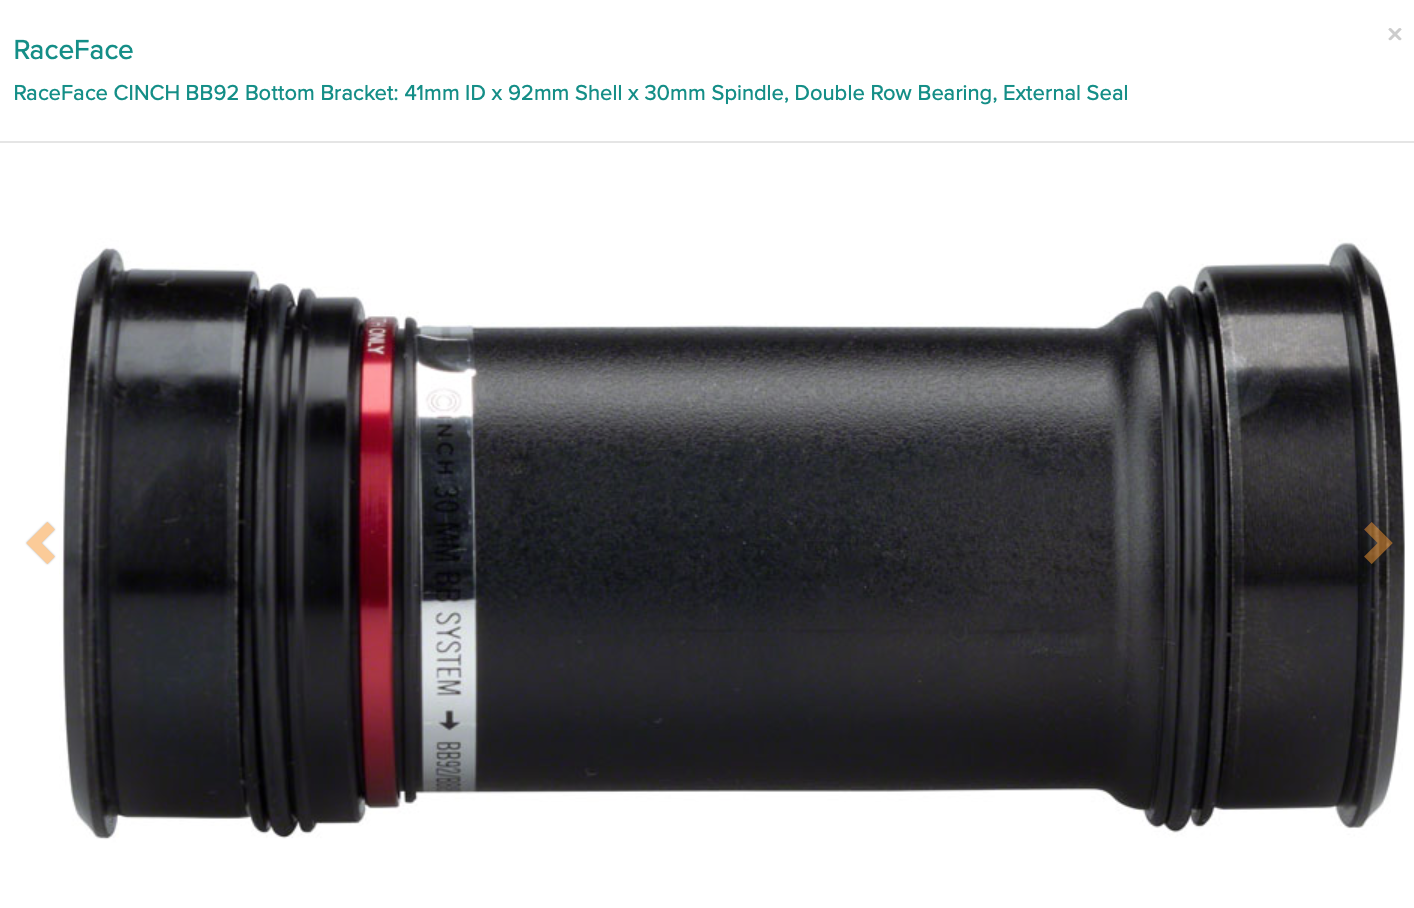 RaceFace RaceFace CINCH BB92 Bottom Bracket: 41mm ID x 92mm Shell x 30mm Spindle, Double Row Bearing, External Seal